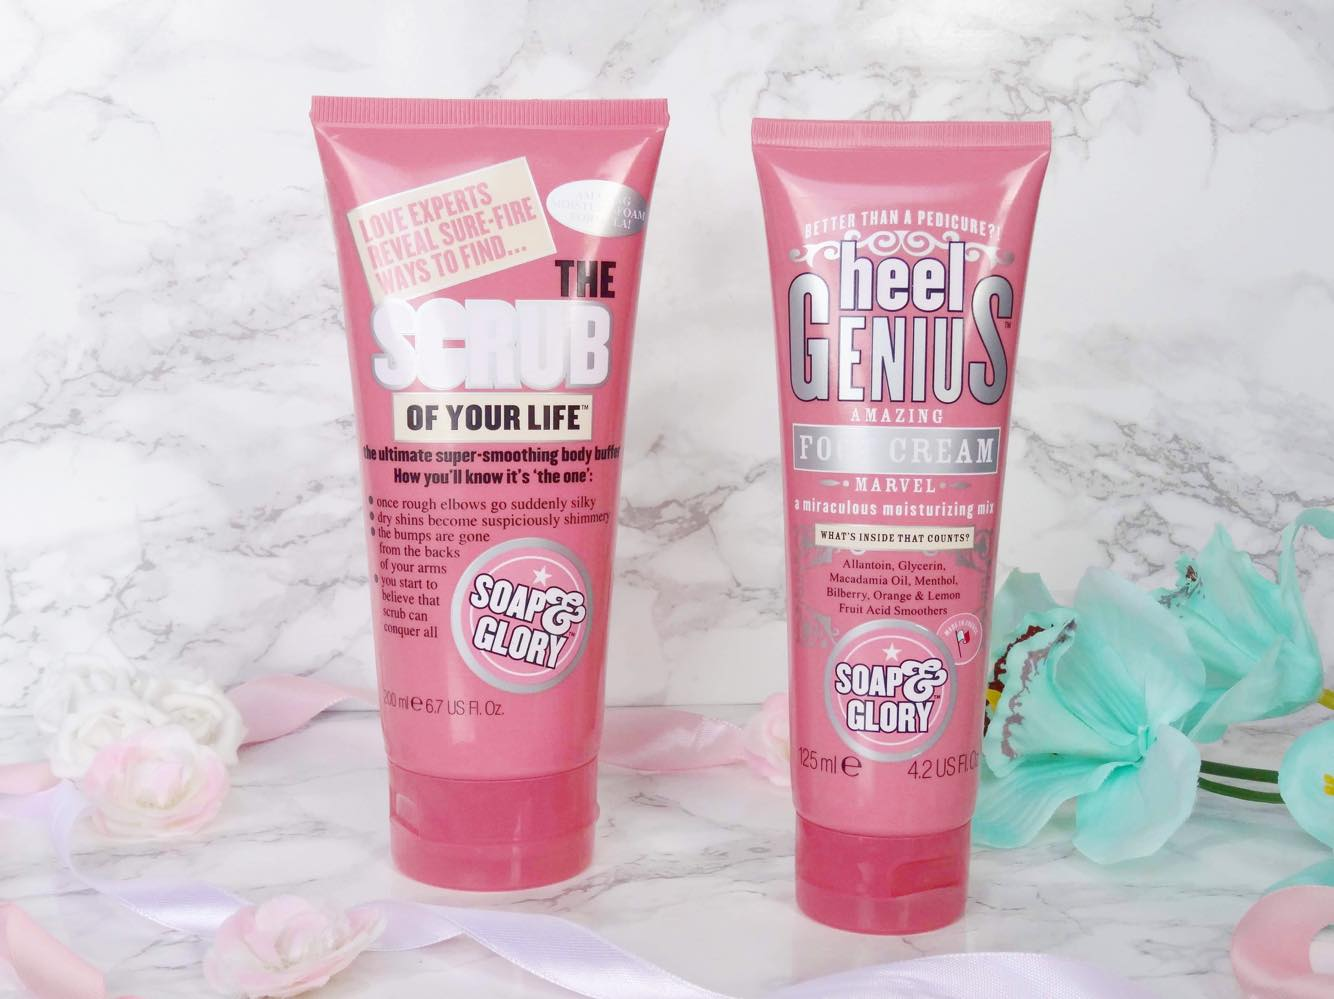 Soap and Glory Heels Genius and Scrub Of Your Life